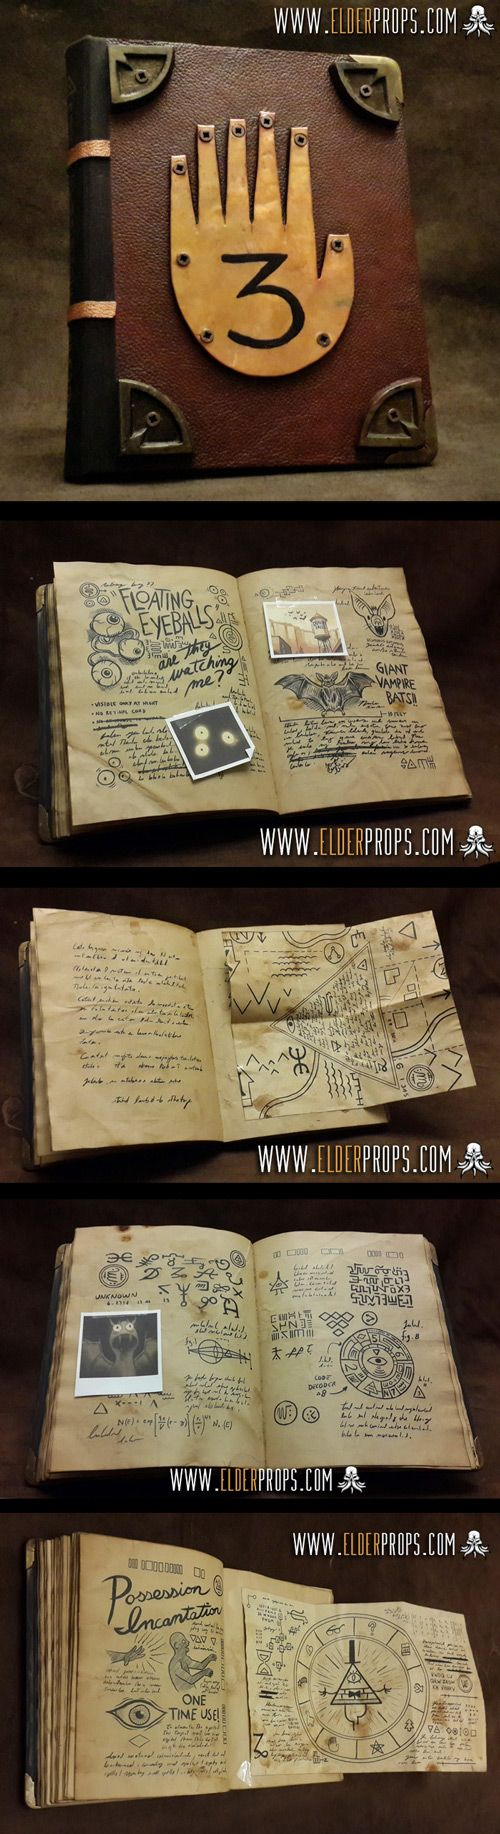 Journal 3 replica from Gravity Falls. More details on the contruction at: http://elderprops.tumblr.com